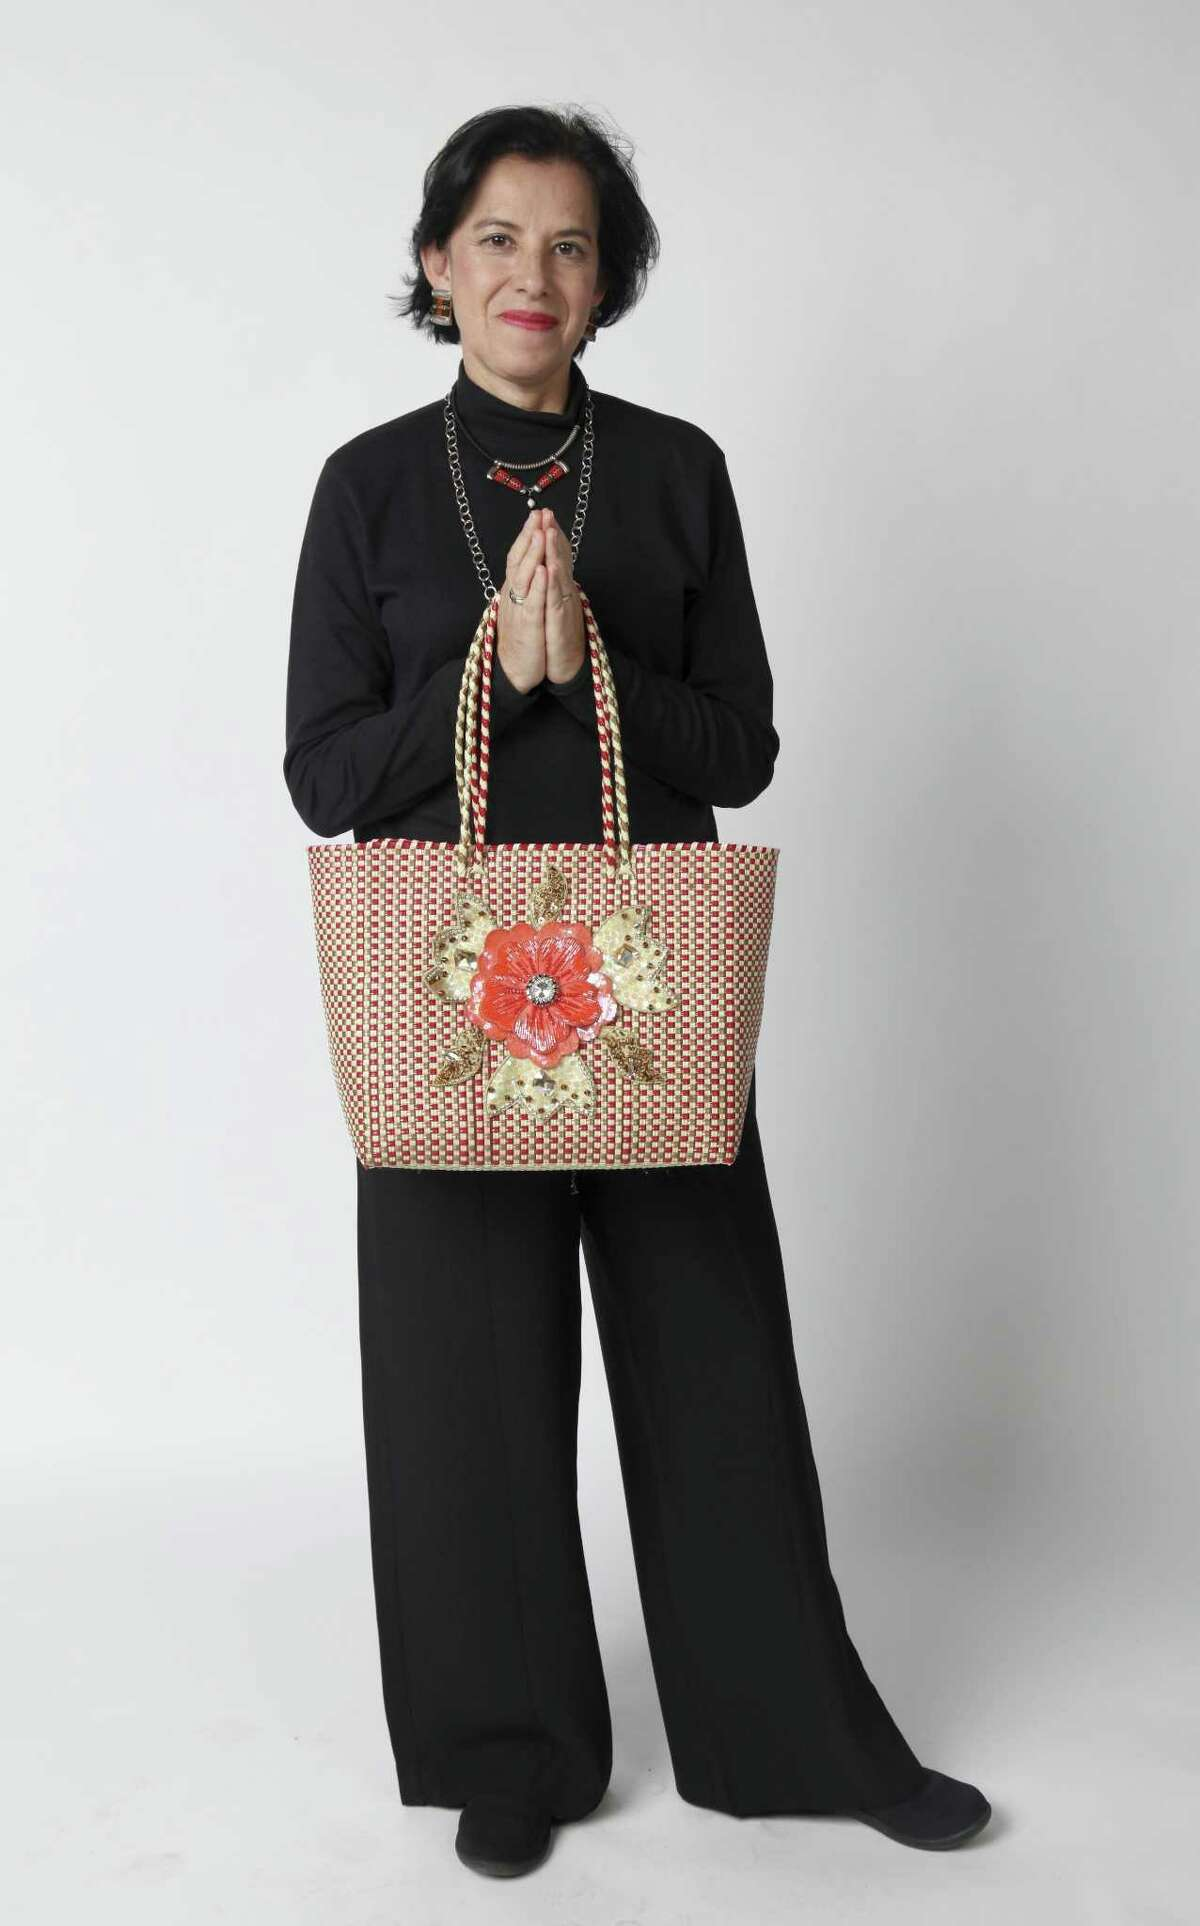 Veronica Prida's bag, her own design, is a large handwoven colorful Mexican market bag that one would fill with groceries.